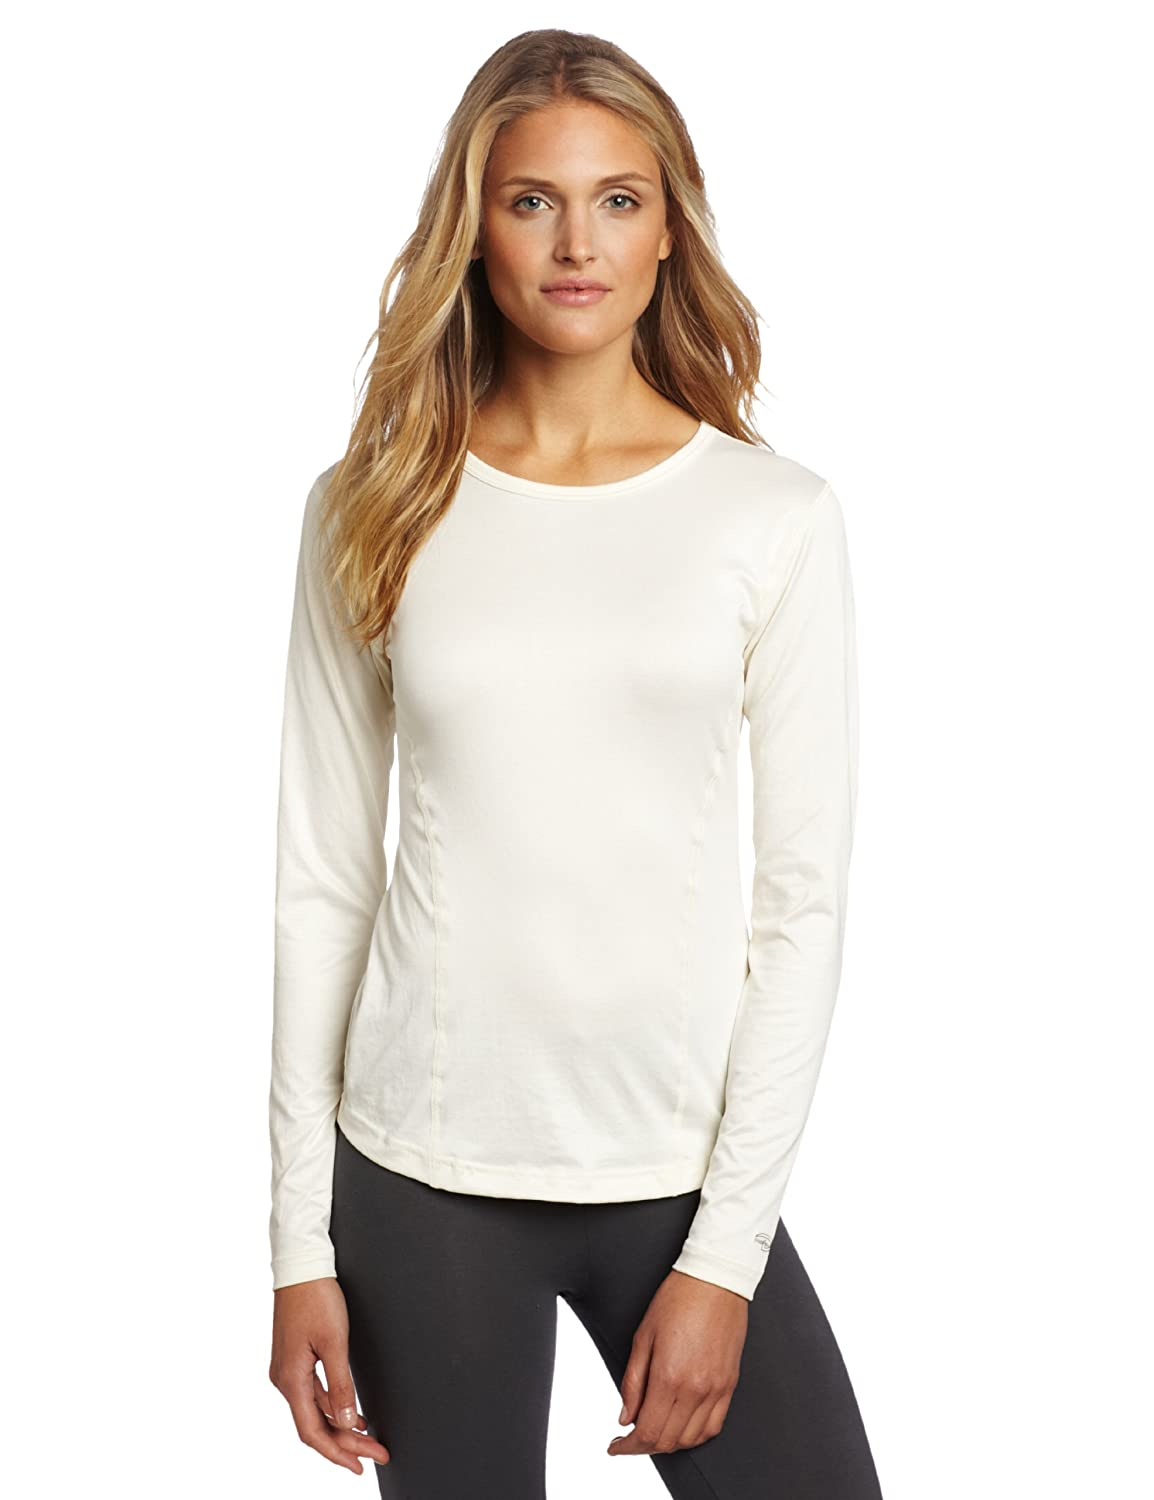 Duofold KMC3 Duofold Womens Mid Weight Varitherm Thermal Shirt Hanesbrands